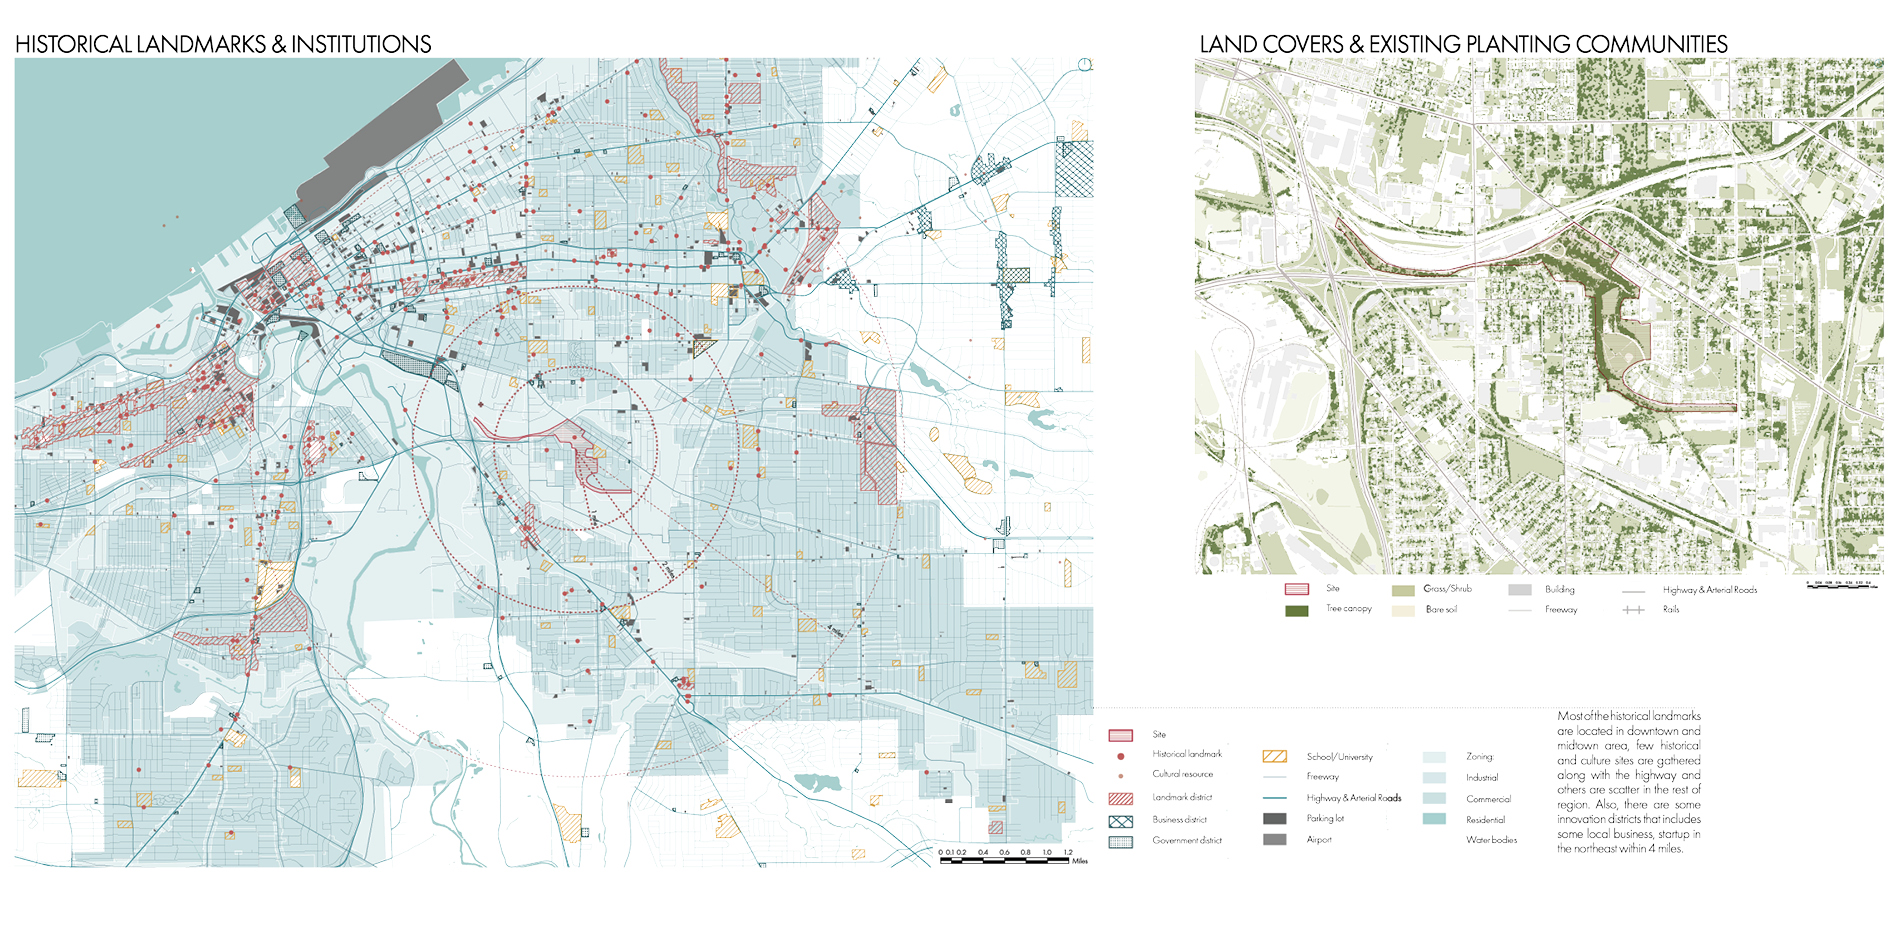 Mapping of landmarks and land covers